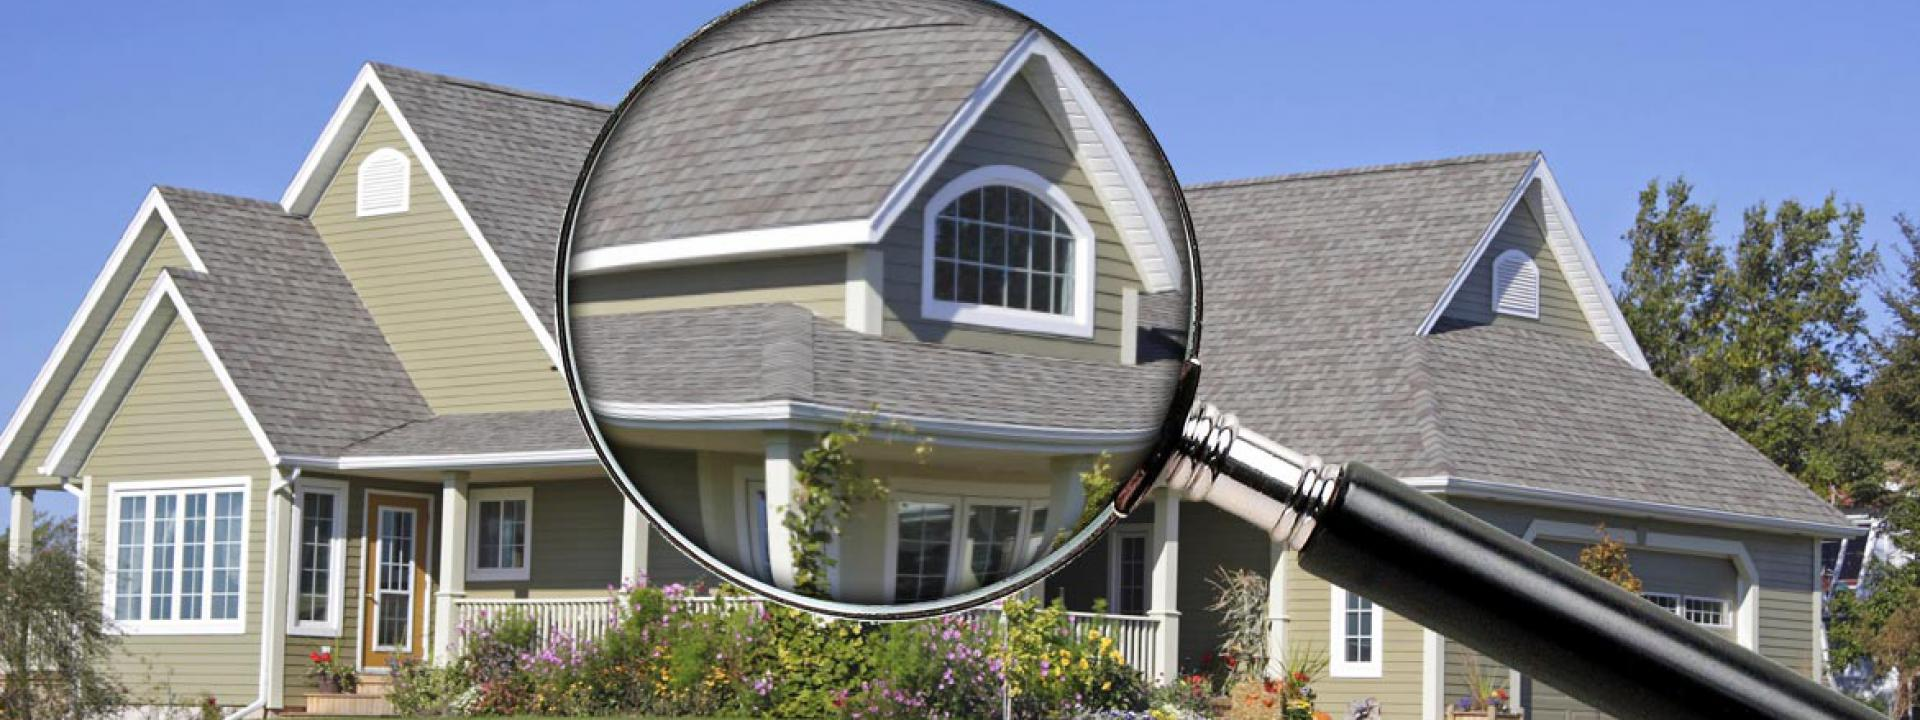 Why Having Your Property Inspected is Important?